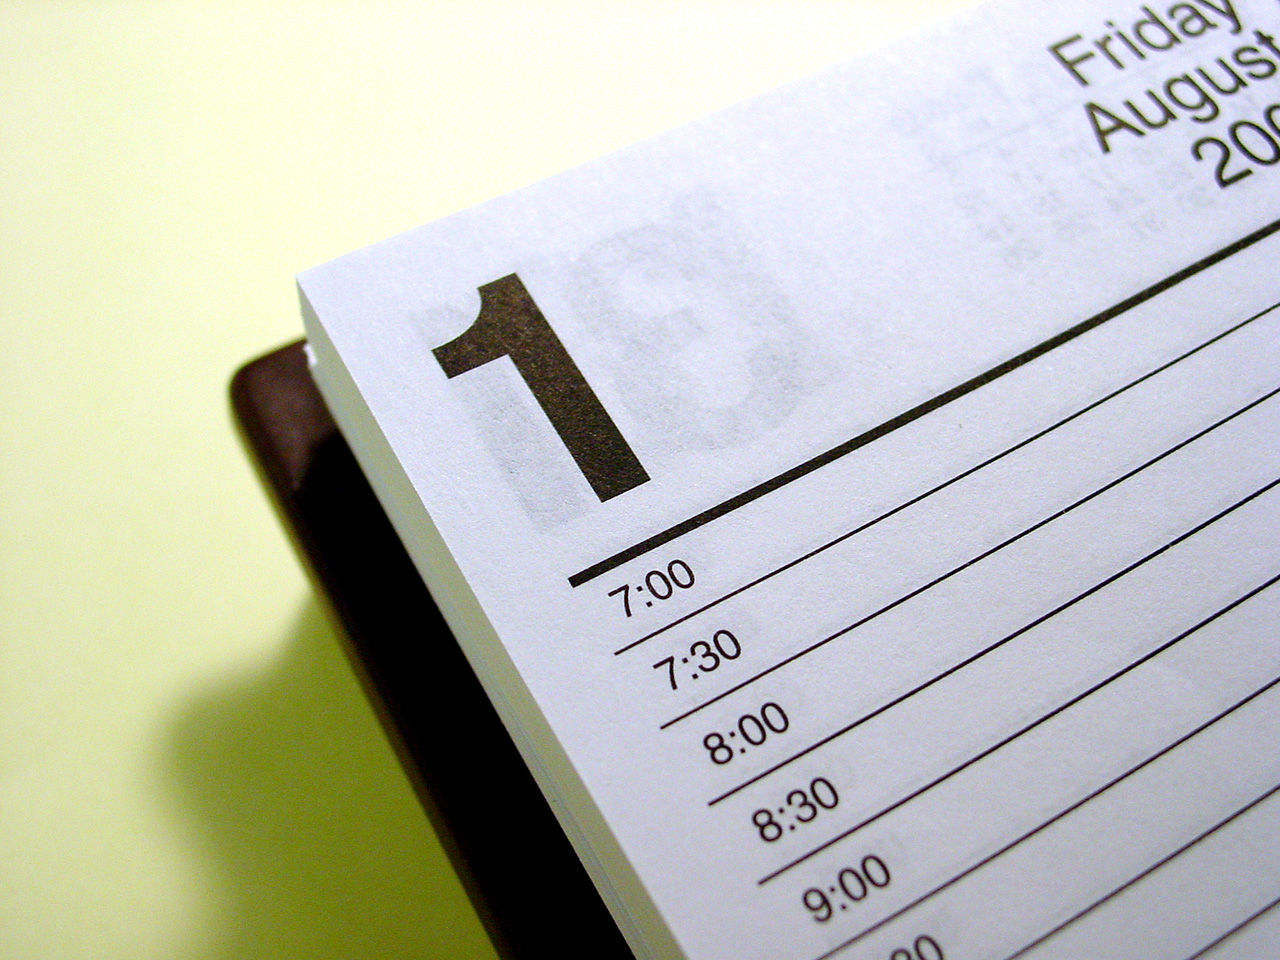 Deadlines Matter: NJ County Tax Board Wins Case Due to Taxpayer's Untimeliness